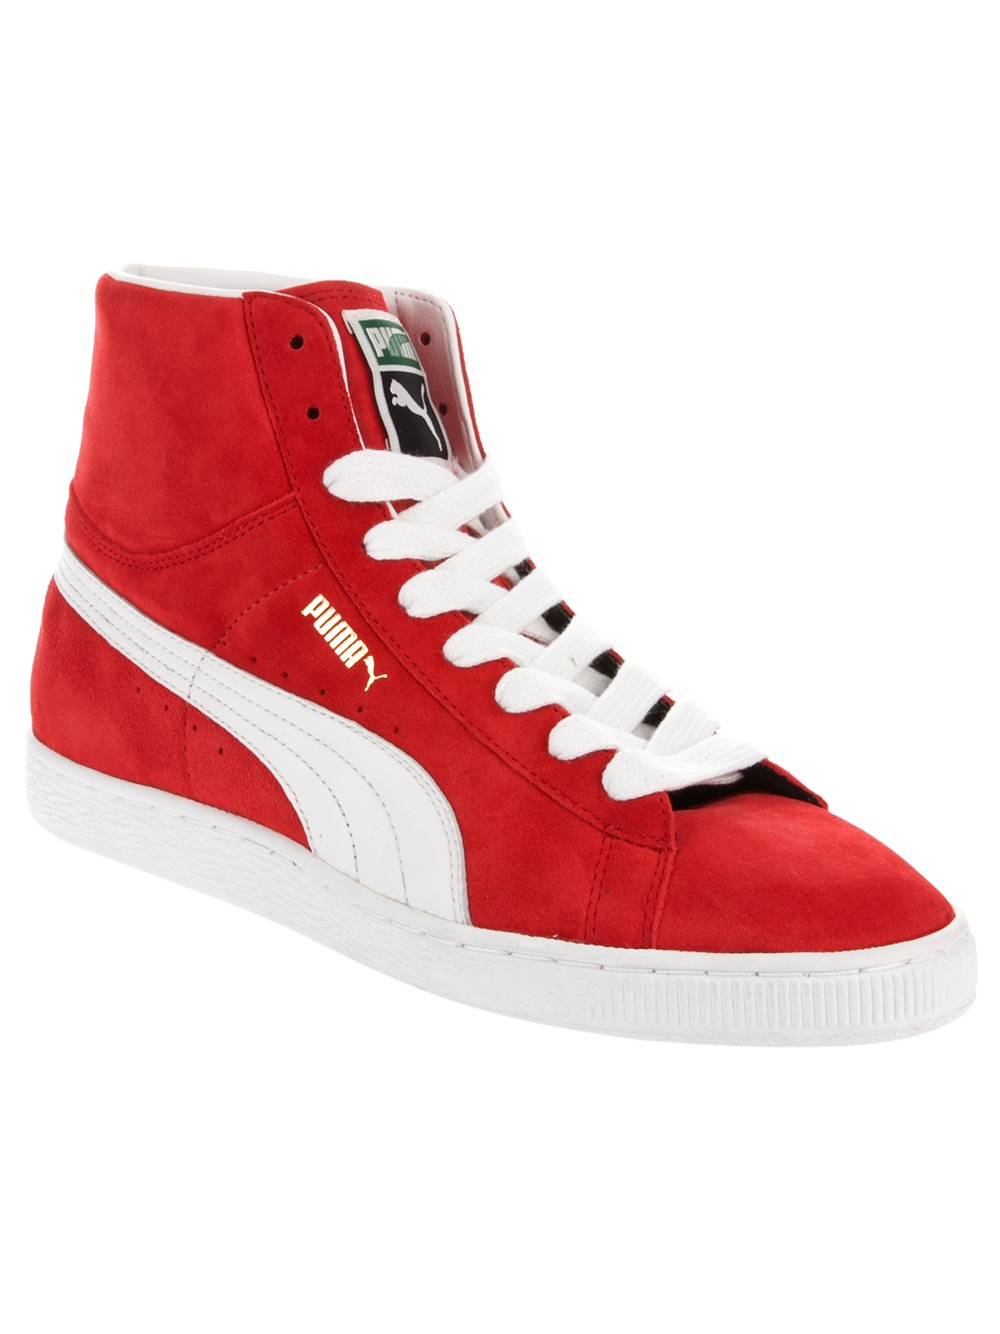 Puma Suede Mid Casual Shoes Women